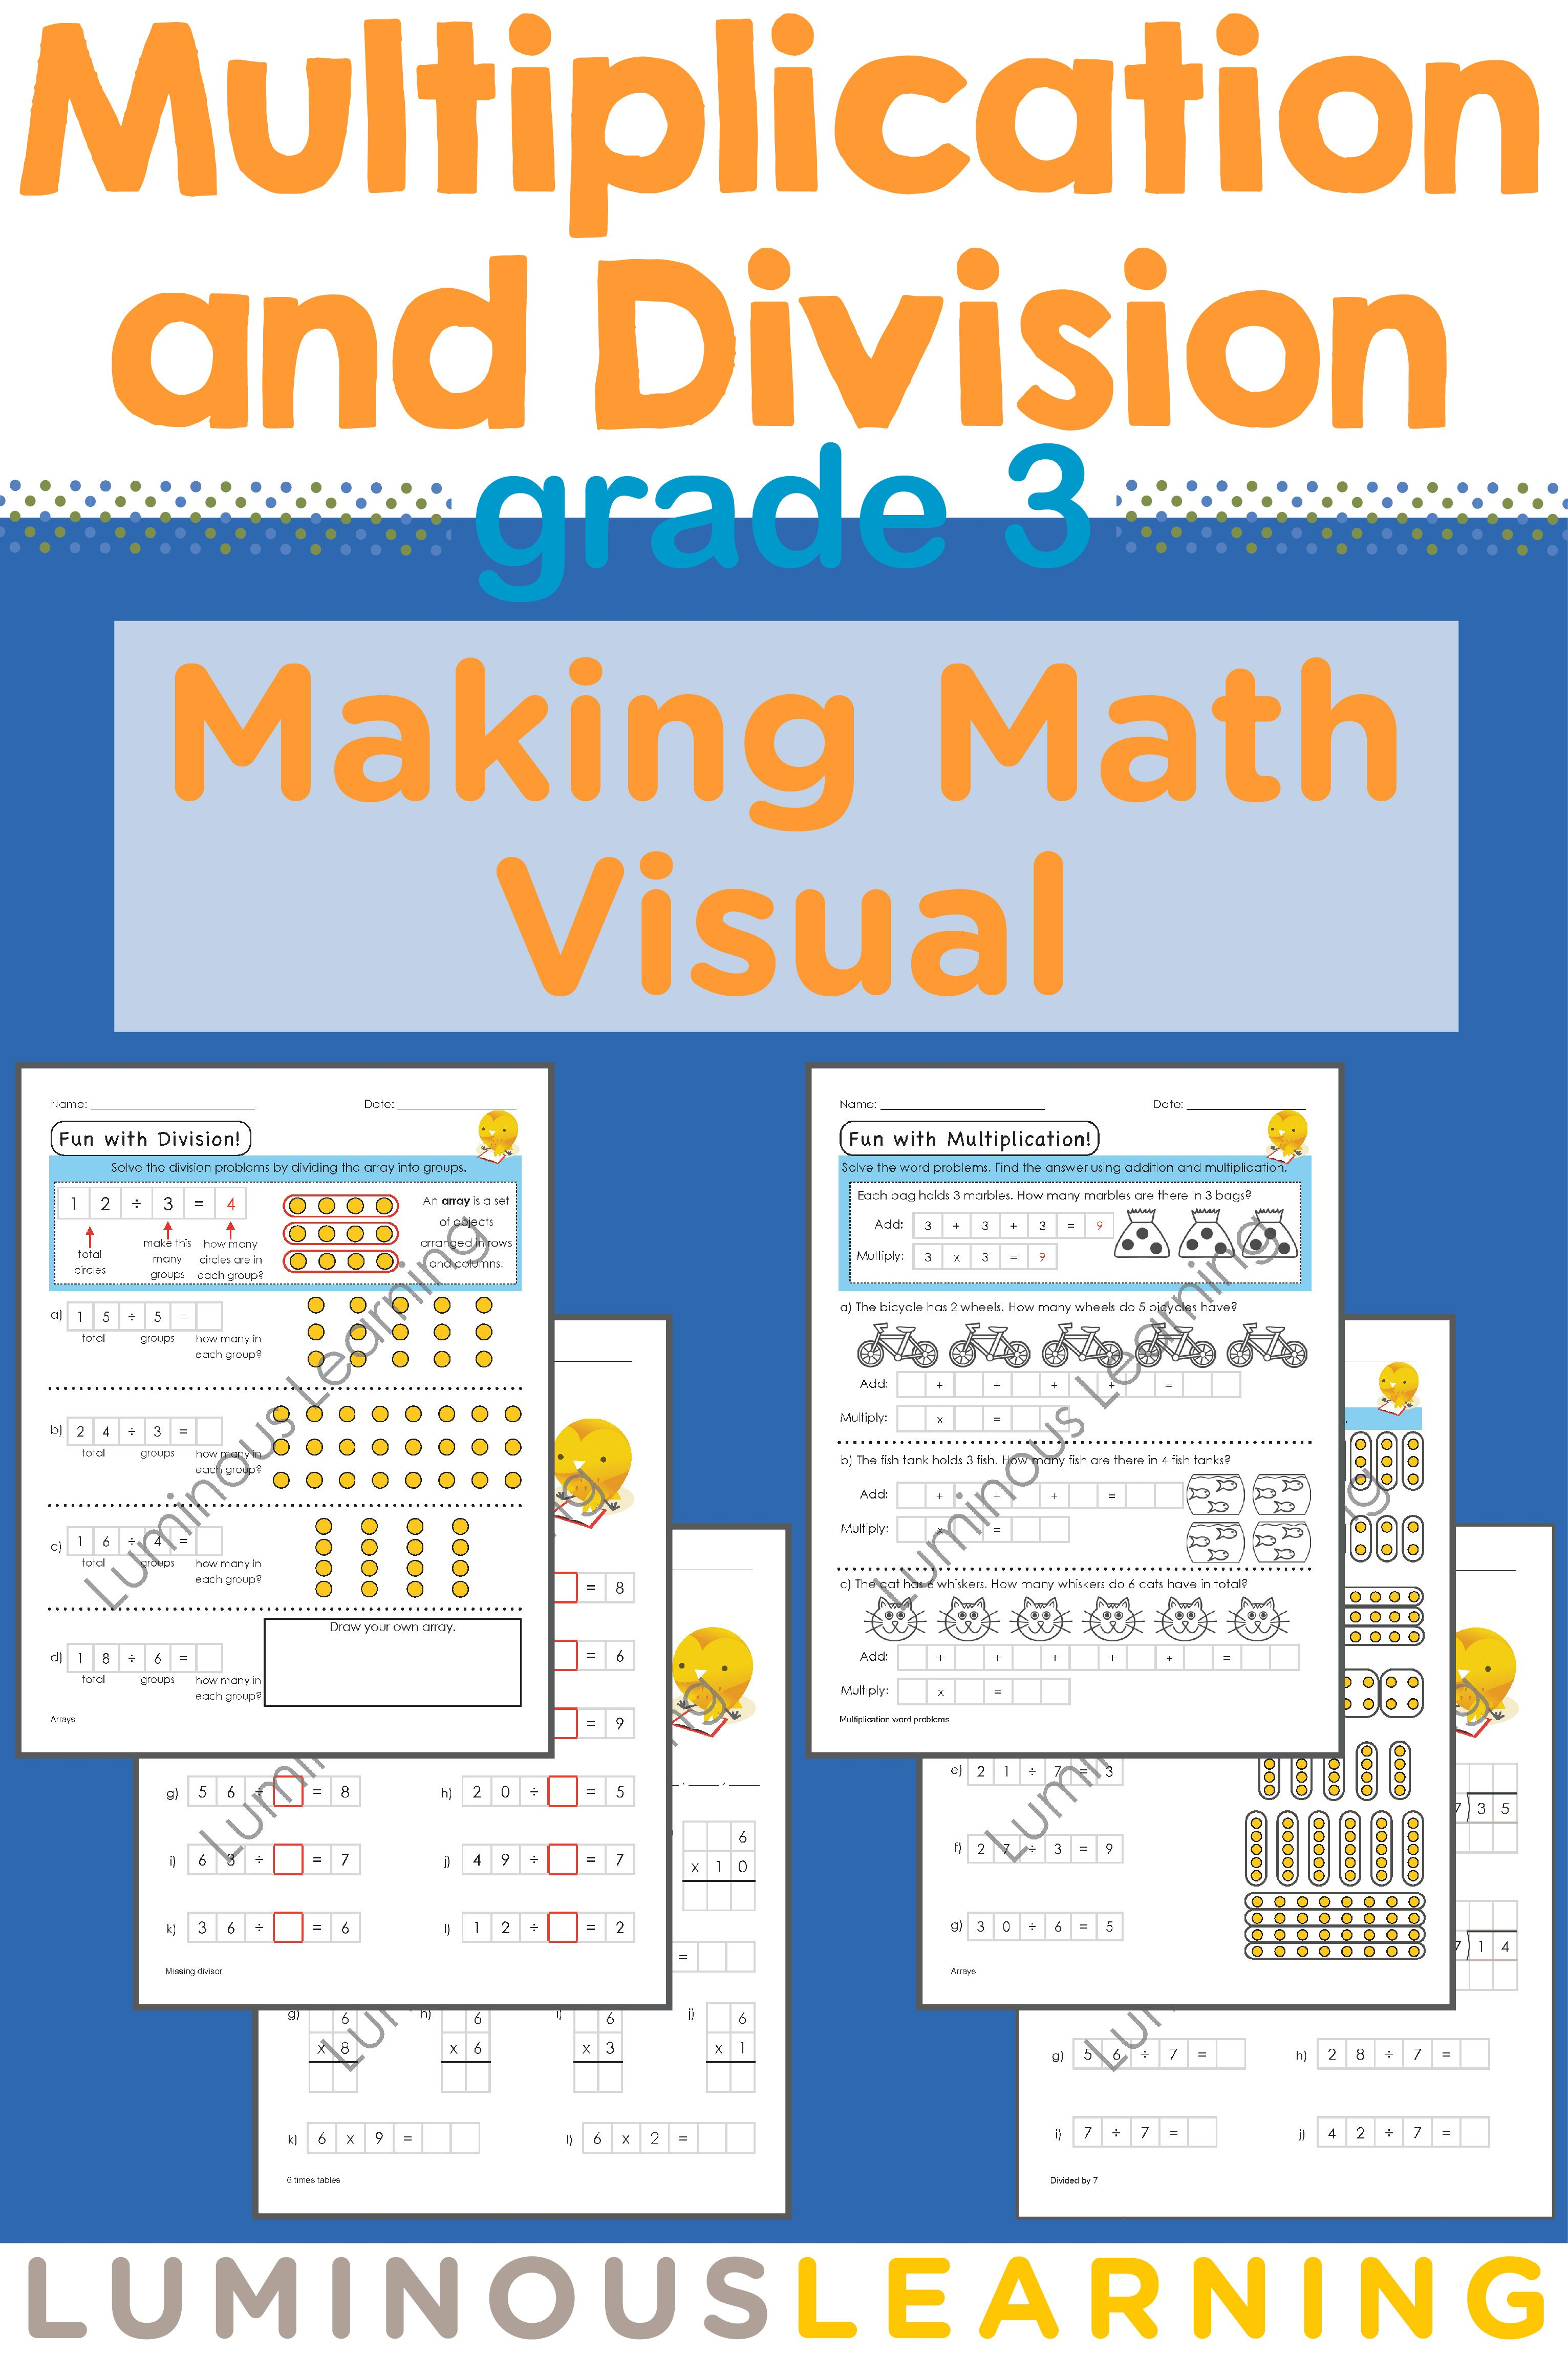 Grade 3 Multiplication And Division Workbook Making Math